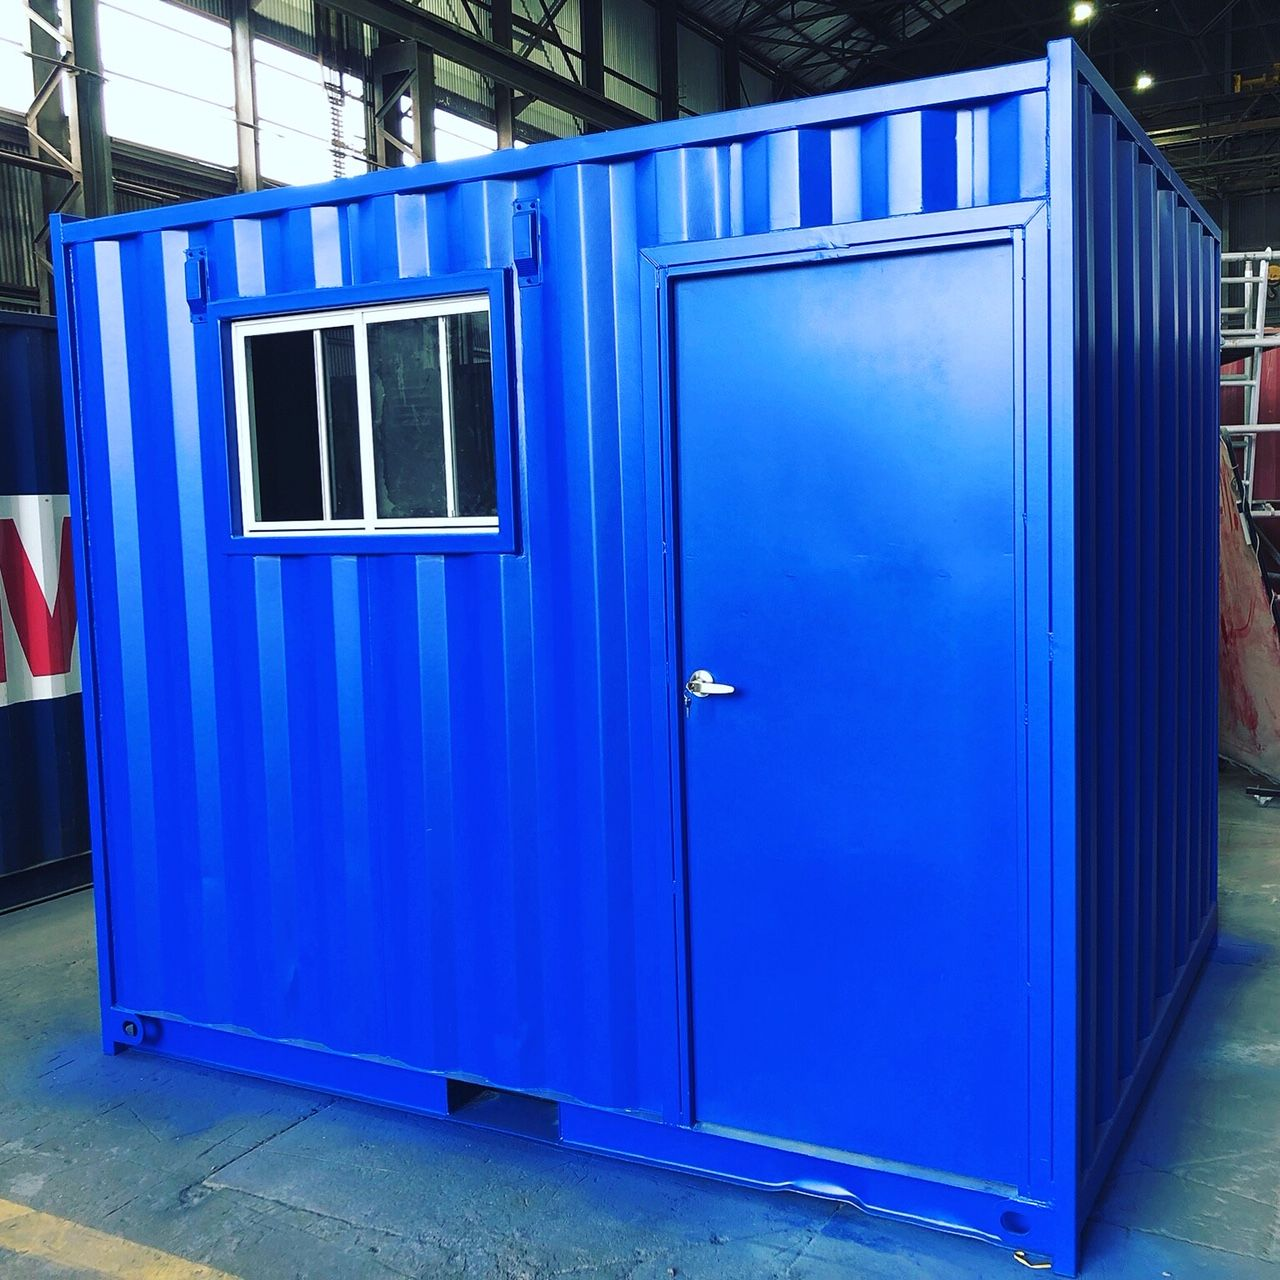 Shipping Containers For Sale In Melbourne Containerspace Shipping Containers For Sale Containers For Sale Container House